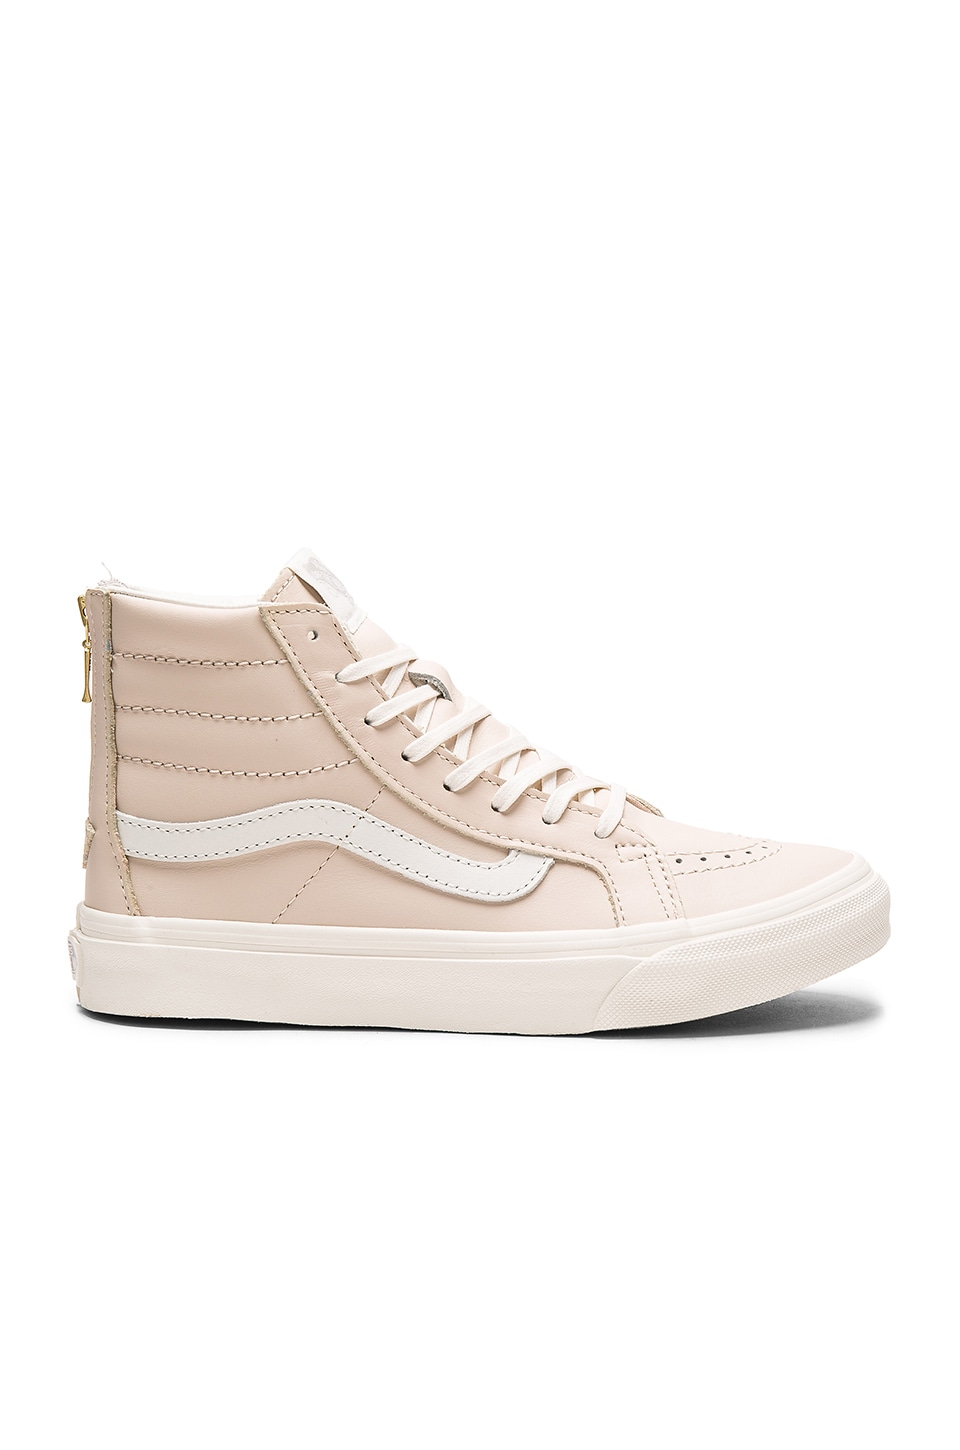 Leather Sk8 Hi Slim Zip Sneaker